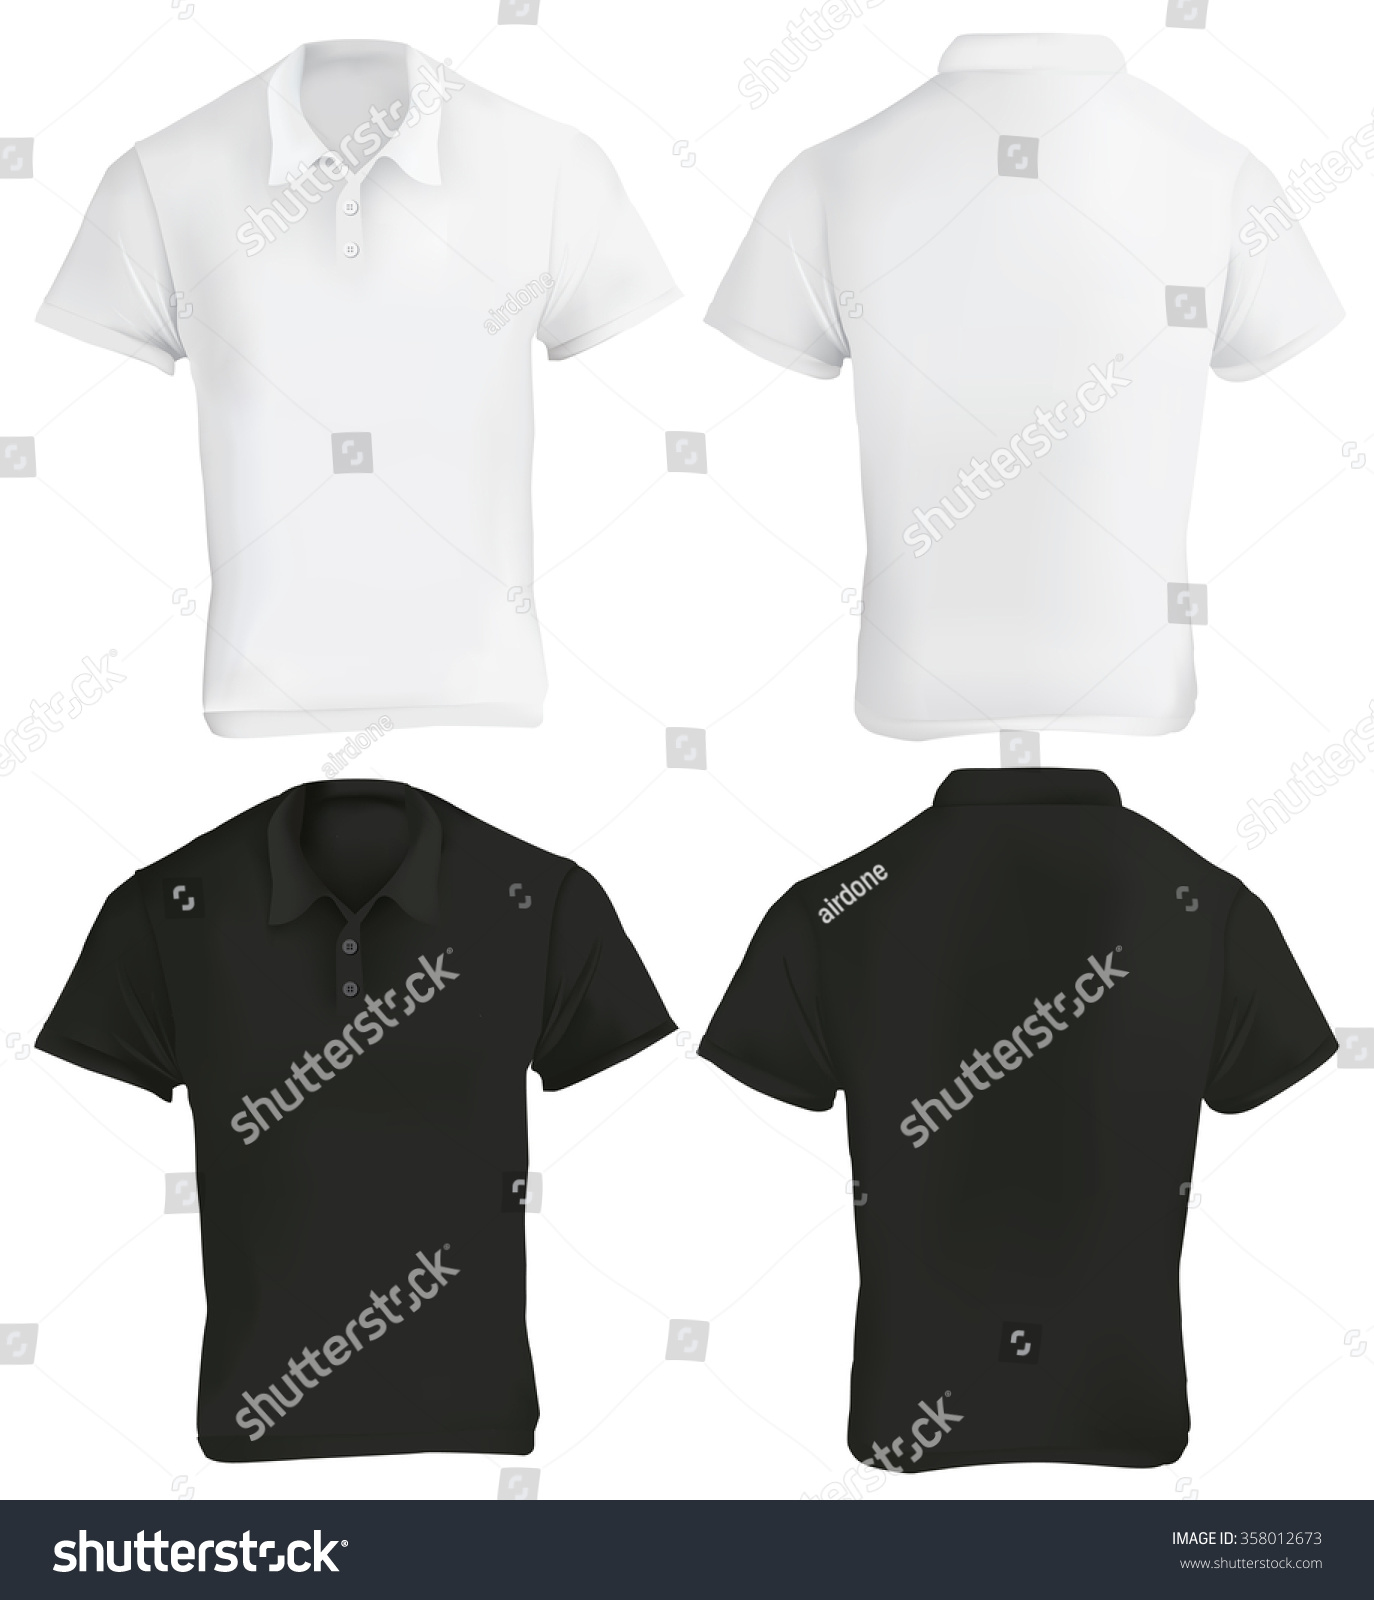 Black t shirt template vector - Blank Black T Shirt Template Vector Illustration Of Black And White Blank Polo Shirt Template Download